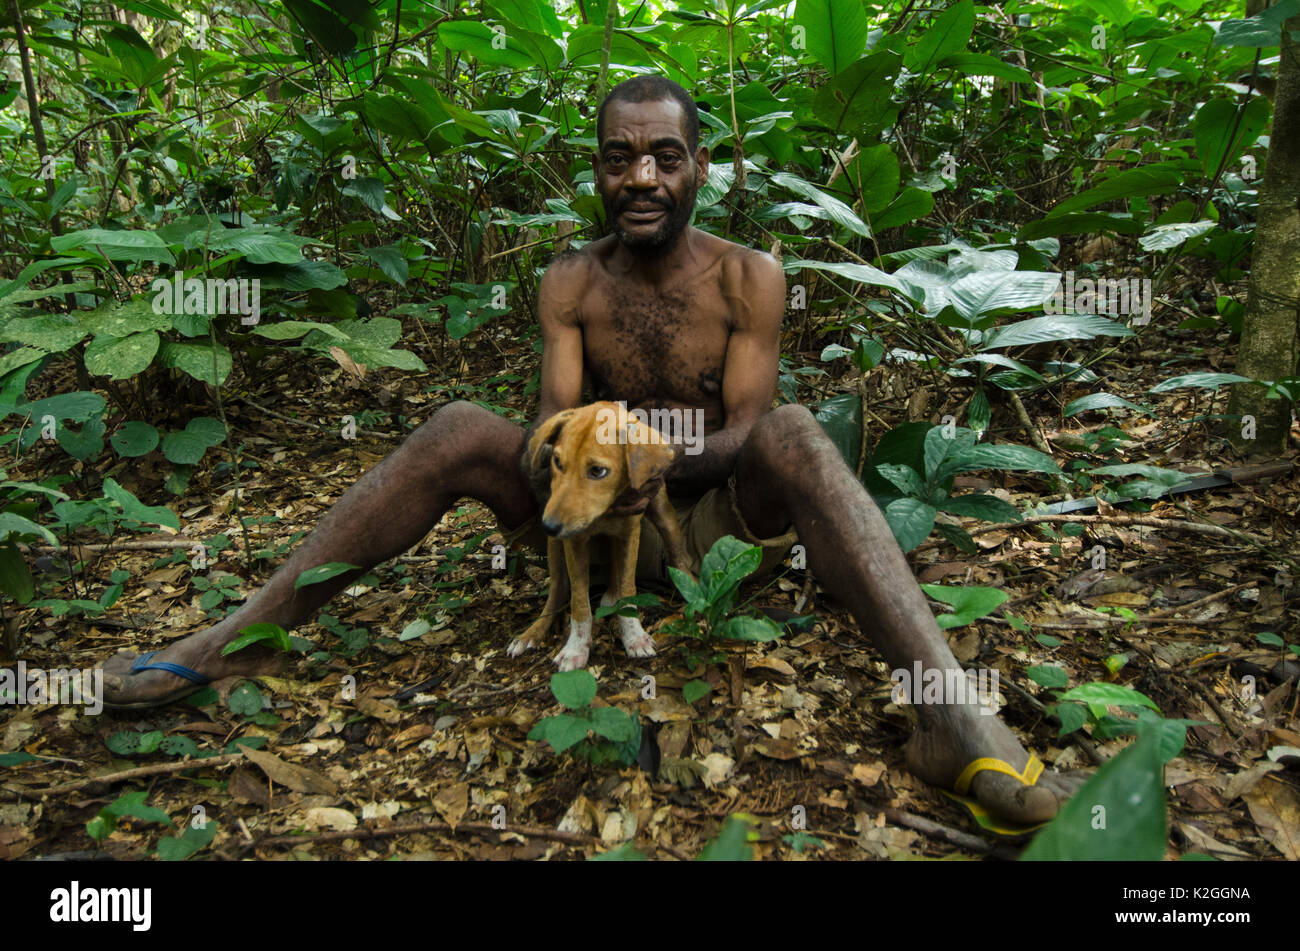 Ba'Kola Pygmy man in forest with dog. Mbomo, Odzala-Kokoua National Park, Republic of Congo (Congo-Brazzaville), Africa, June 2013. - Stock Image